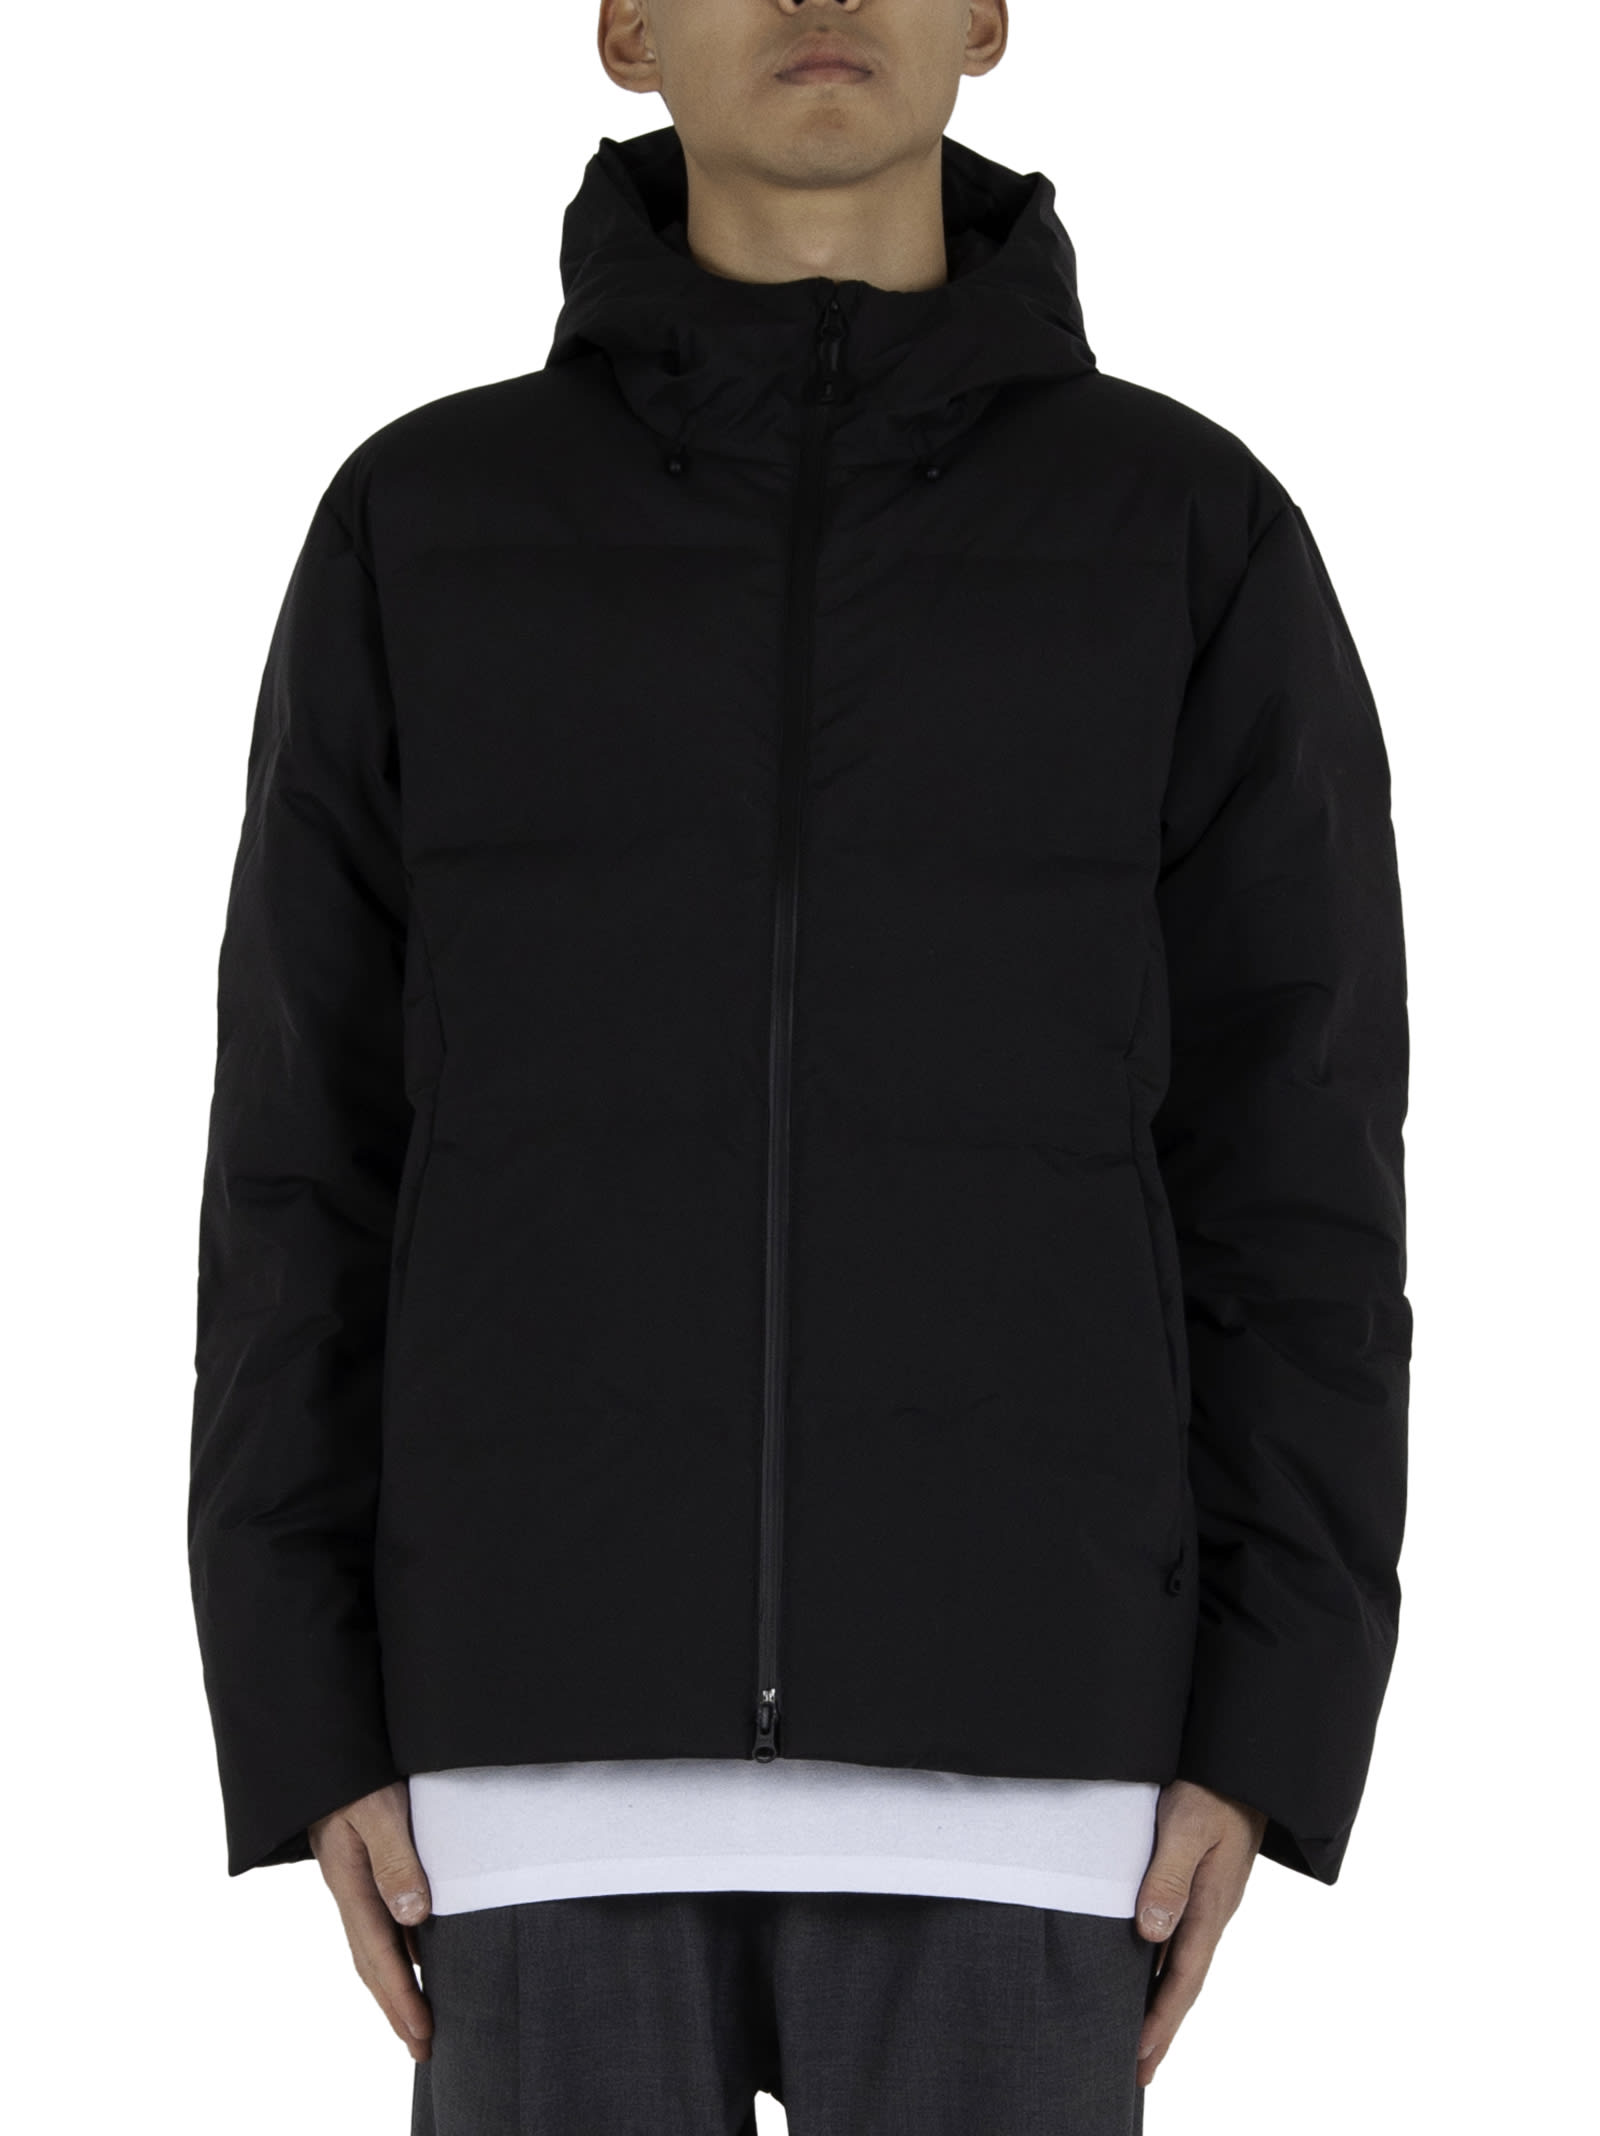 100% goose down and recycled duck; - Zipper closure; - Logo printed on chest; - Inside pocket; - Side pockets; - Adjustable hood and bottom. - Composition: 100% Recycled polyester - Color: Black